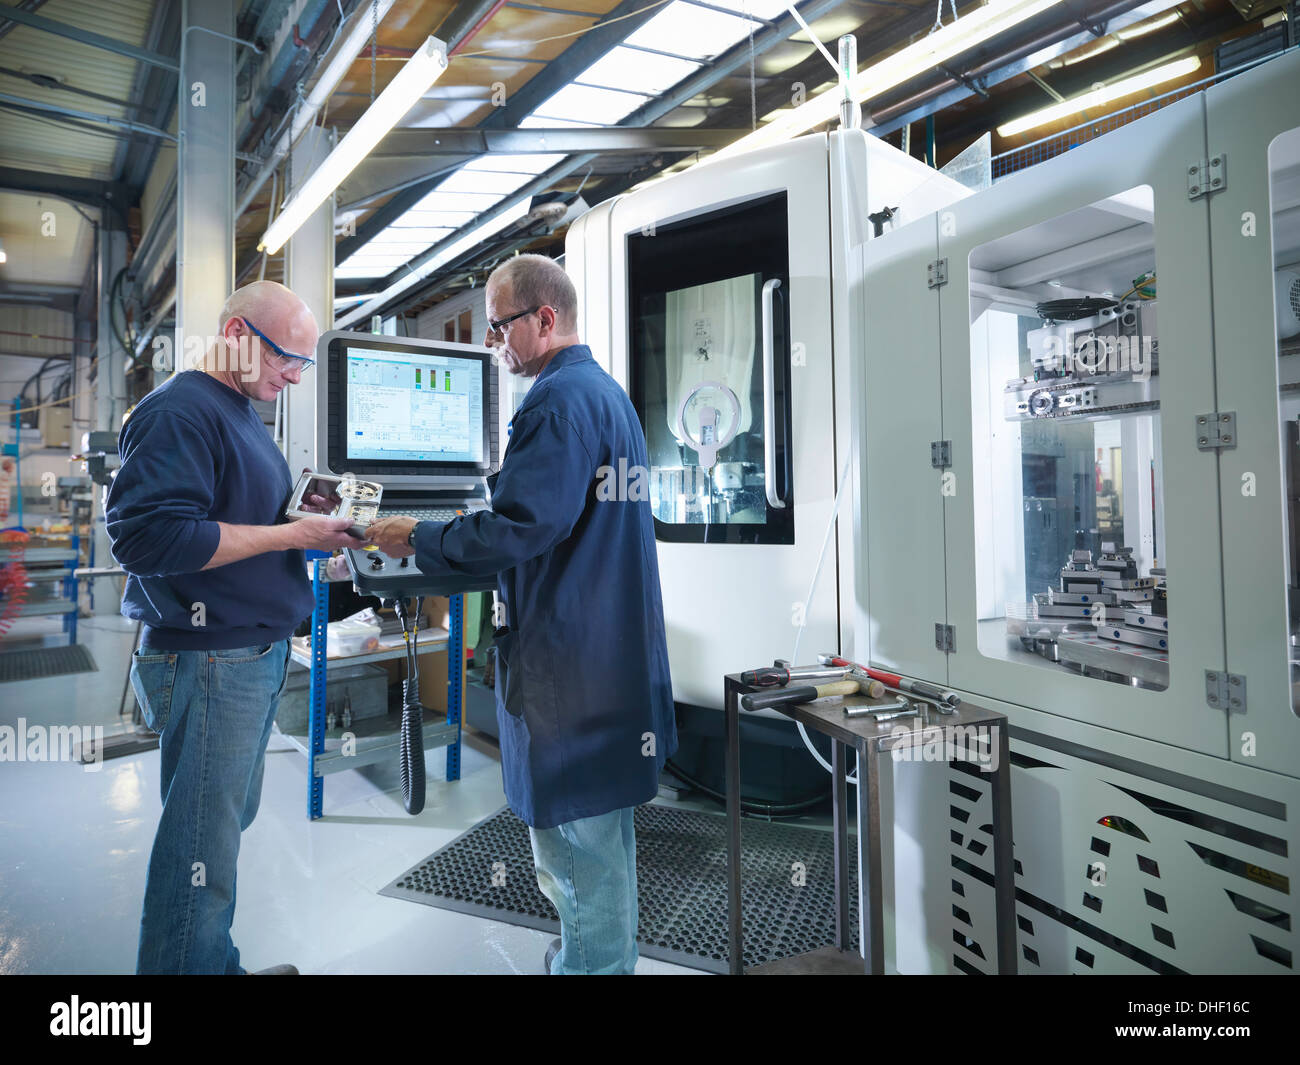 Engineers inspecting part at computer numerical controlled lathe (CNC) in factory - Stock Image